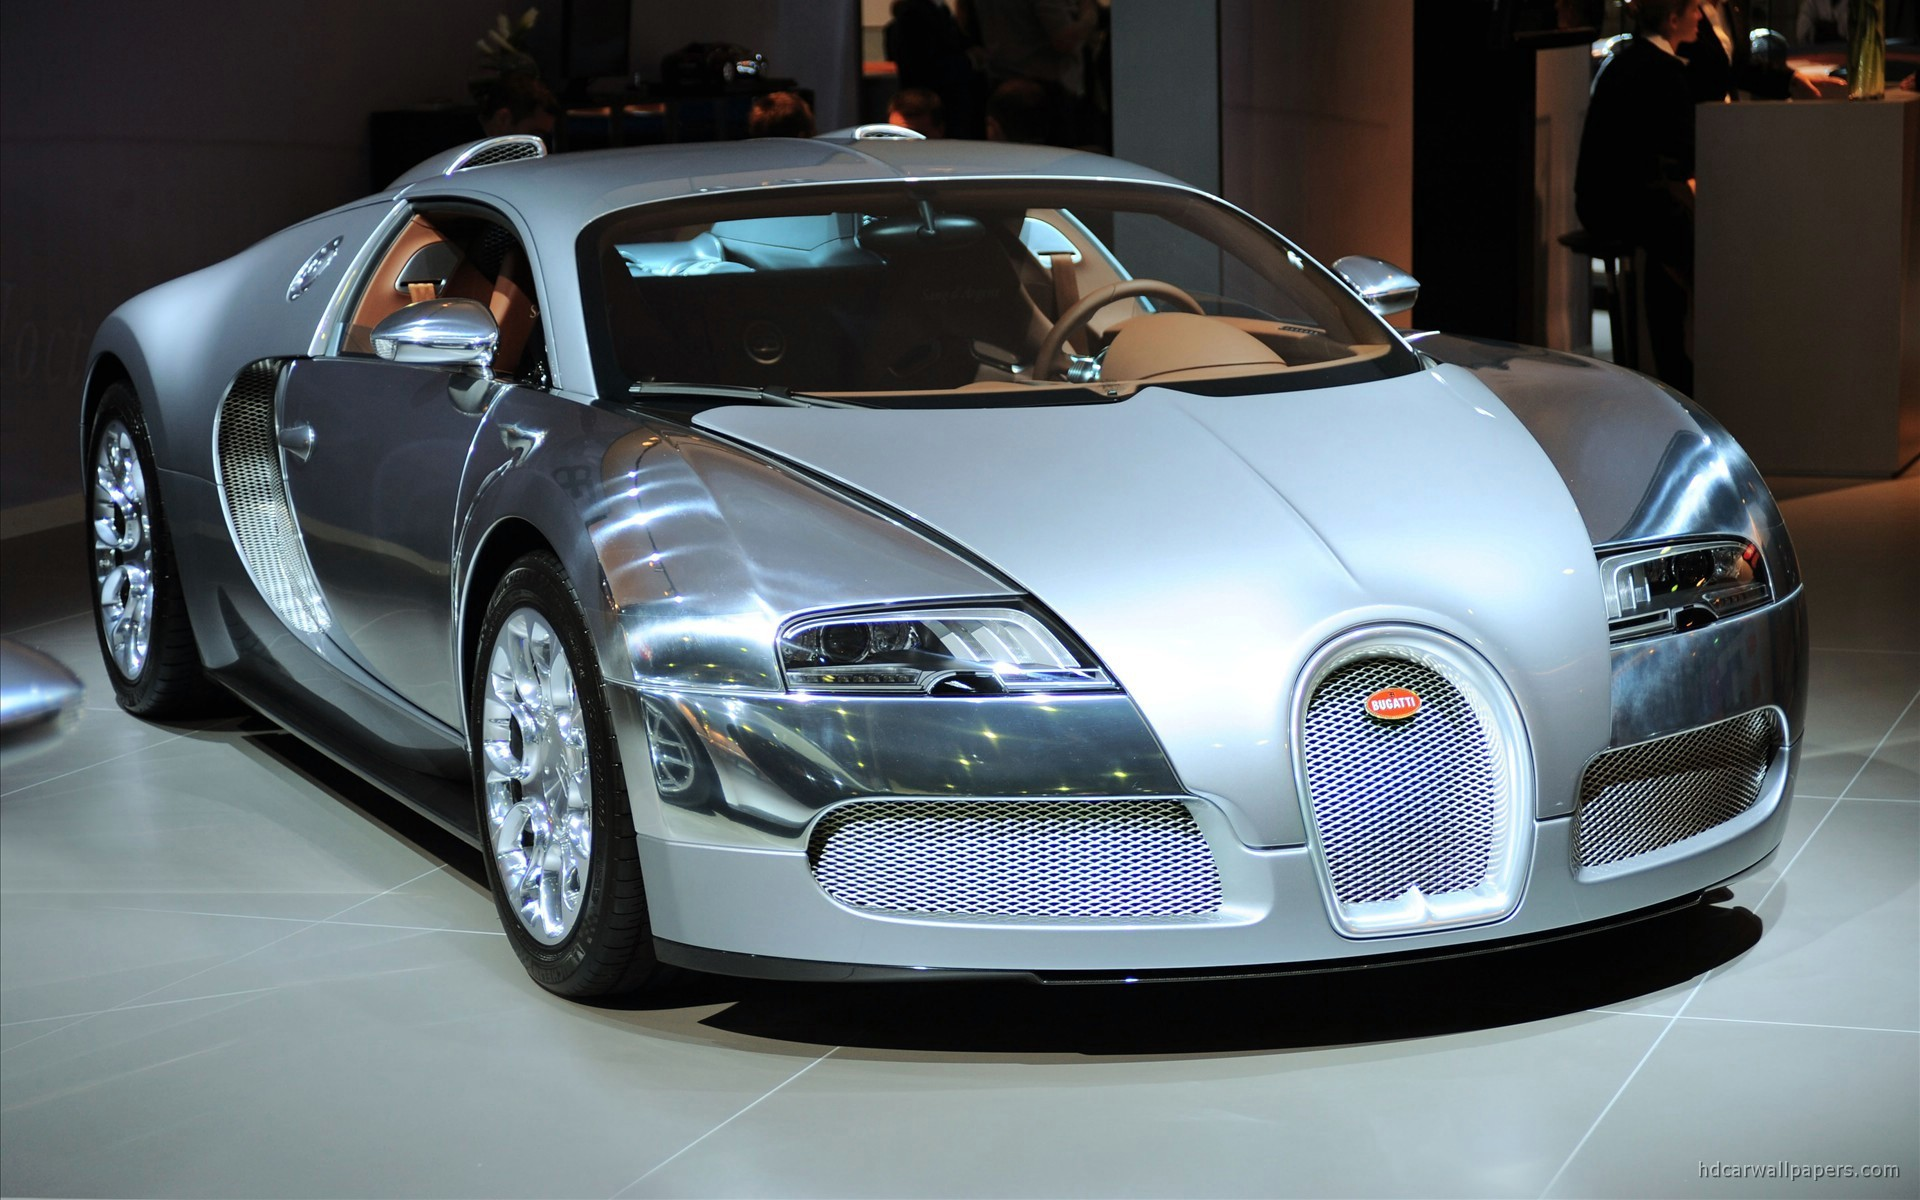 New Bugatti Veyron Wallpaper | HD Car Wallpapers